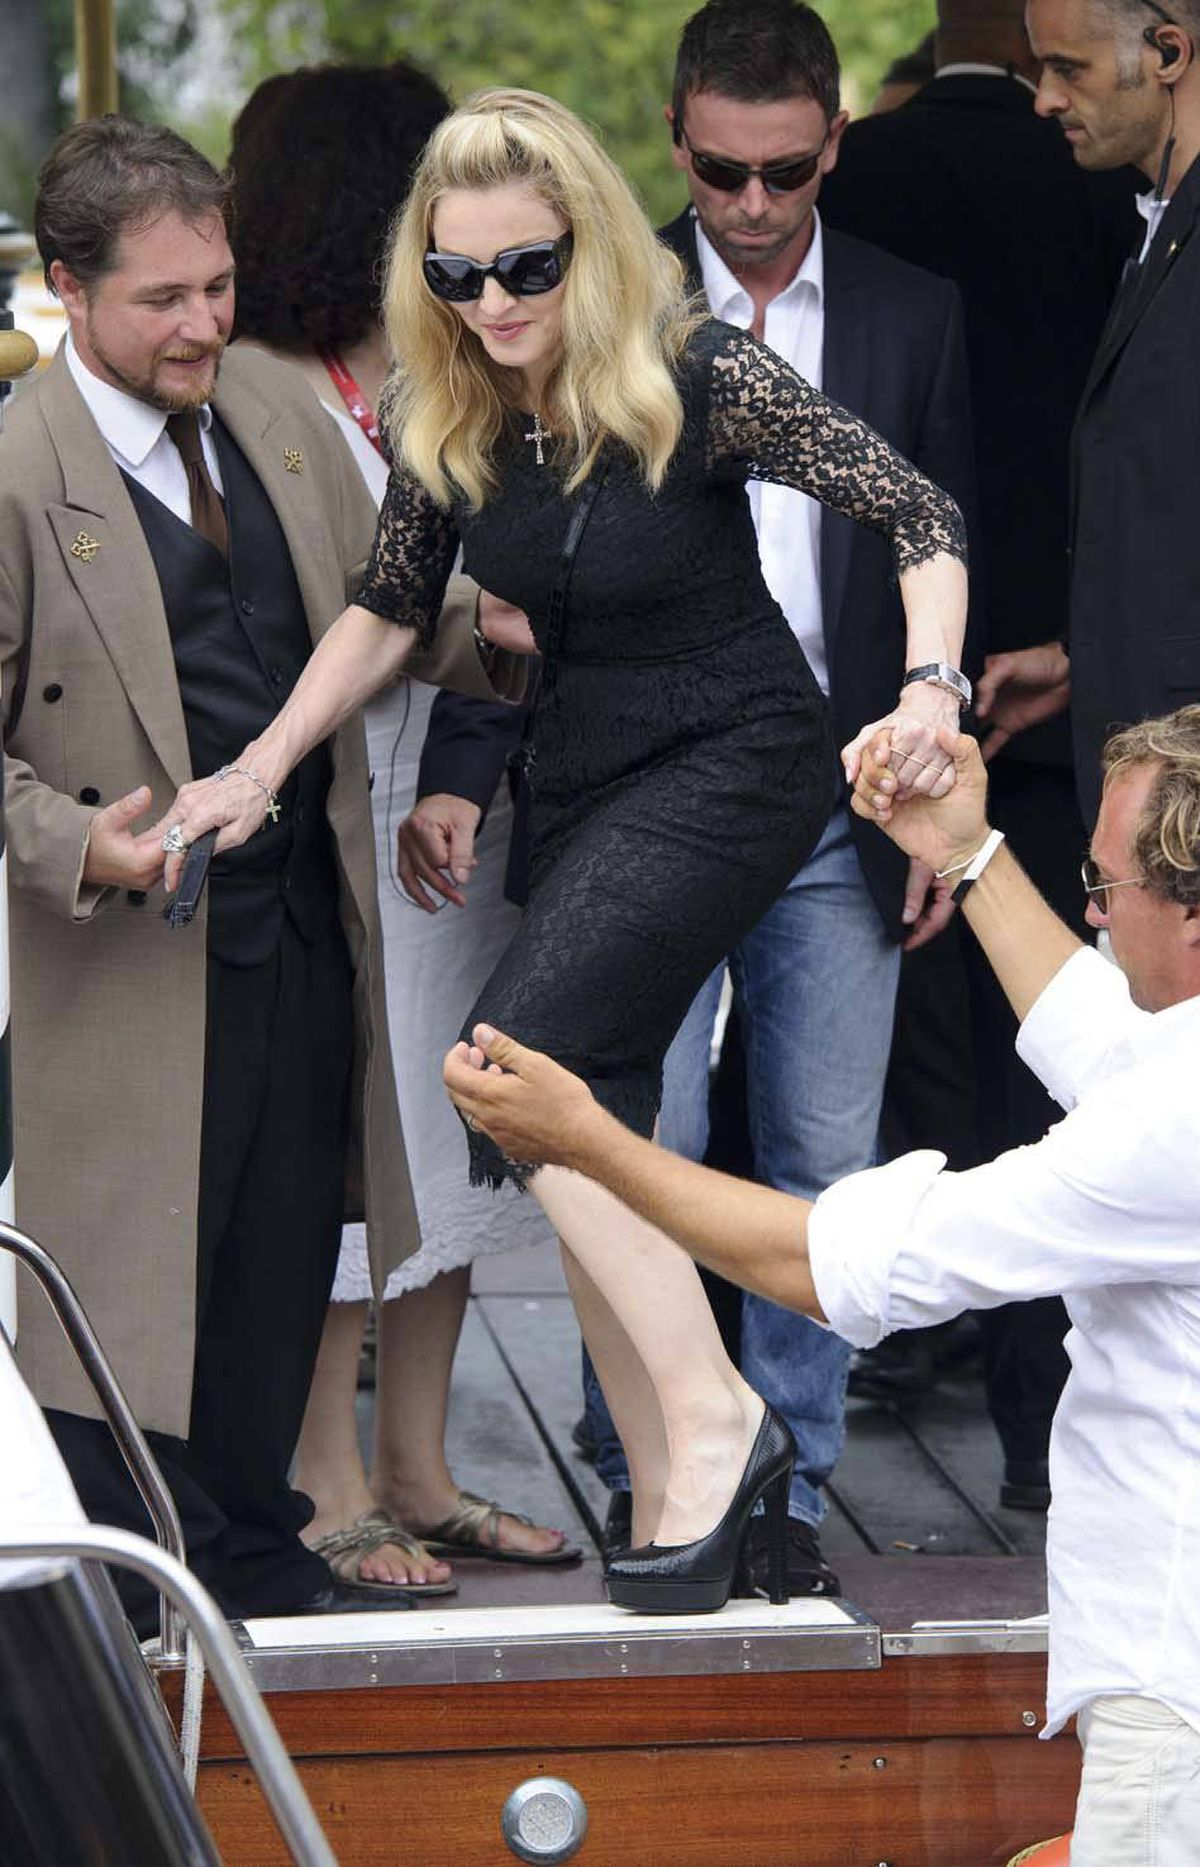 Ever wonder how many men it takes to get Madonna into an Italian speedboat? Me neither.